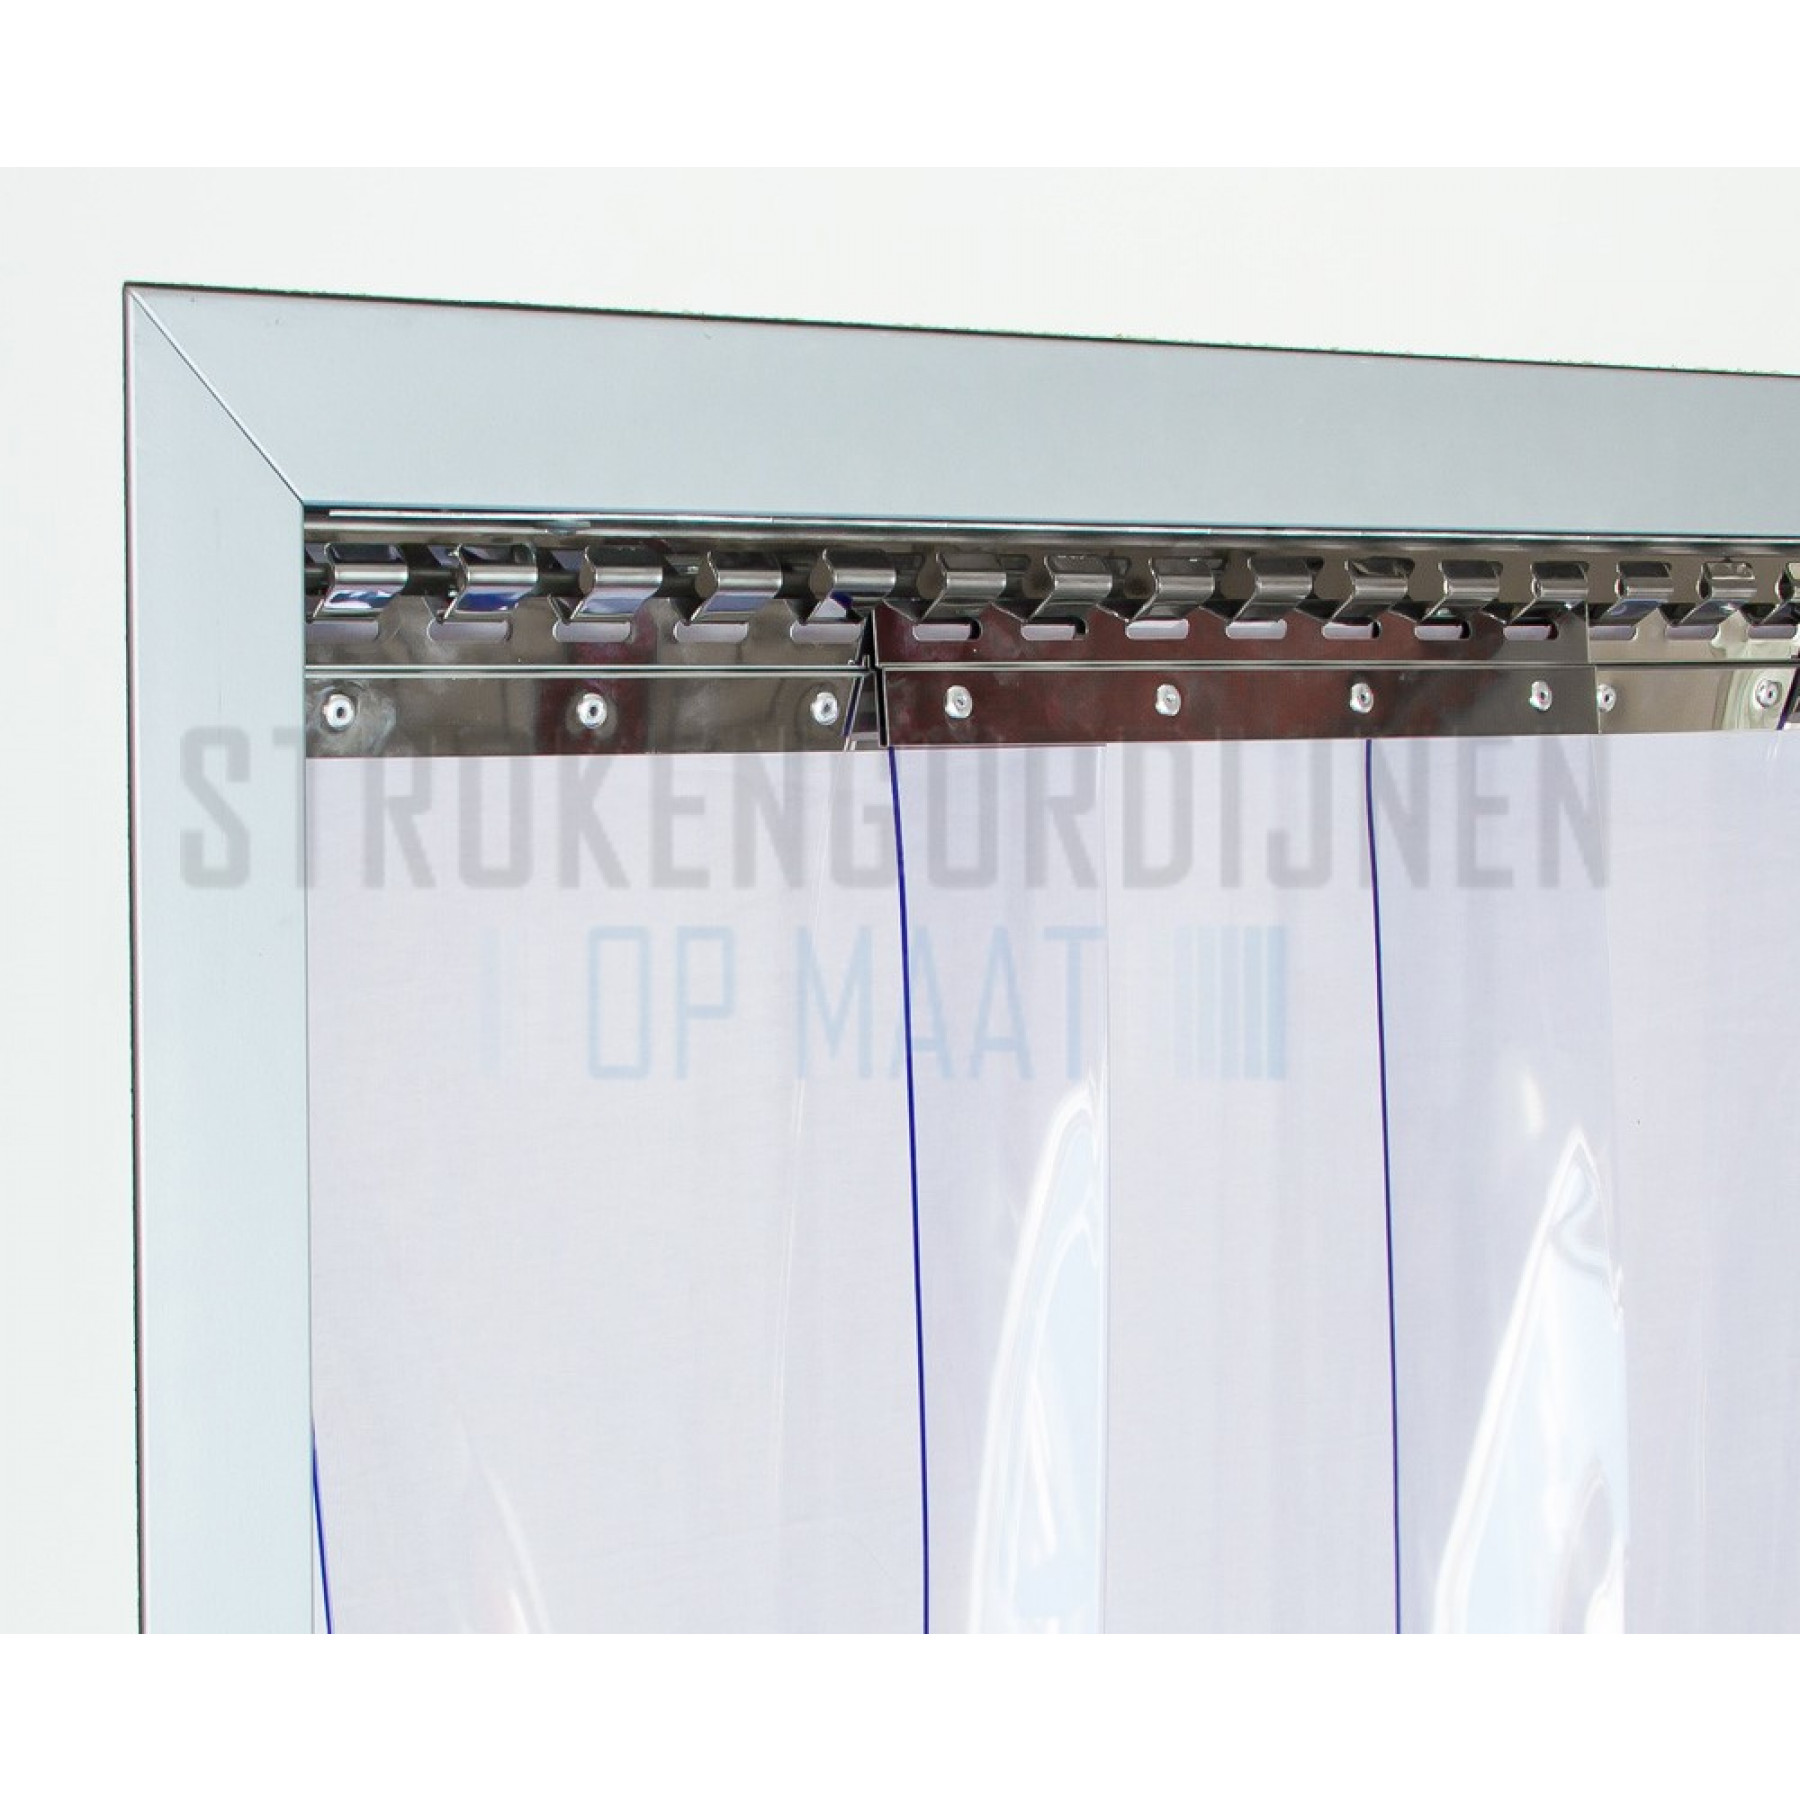 PVC stroken op maat, anti-statisch, 300mm breed, 3mm dik, transparant